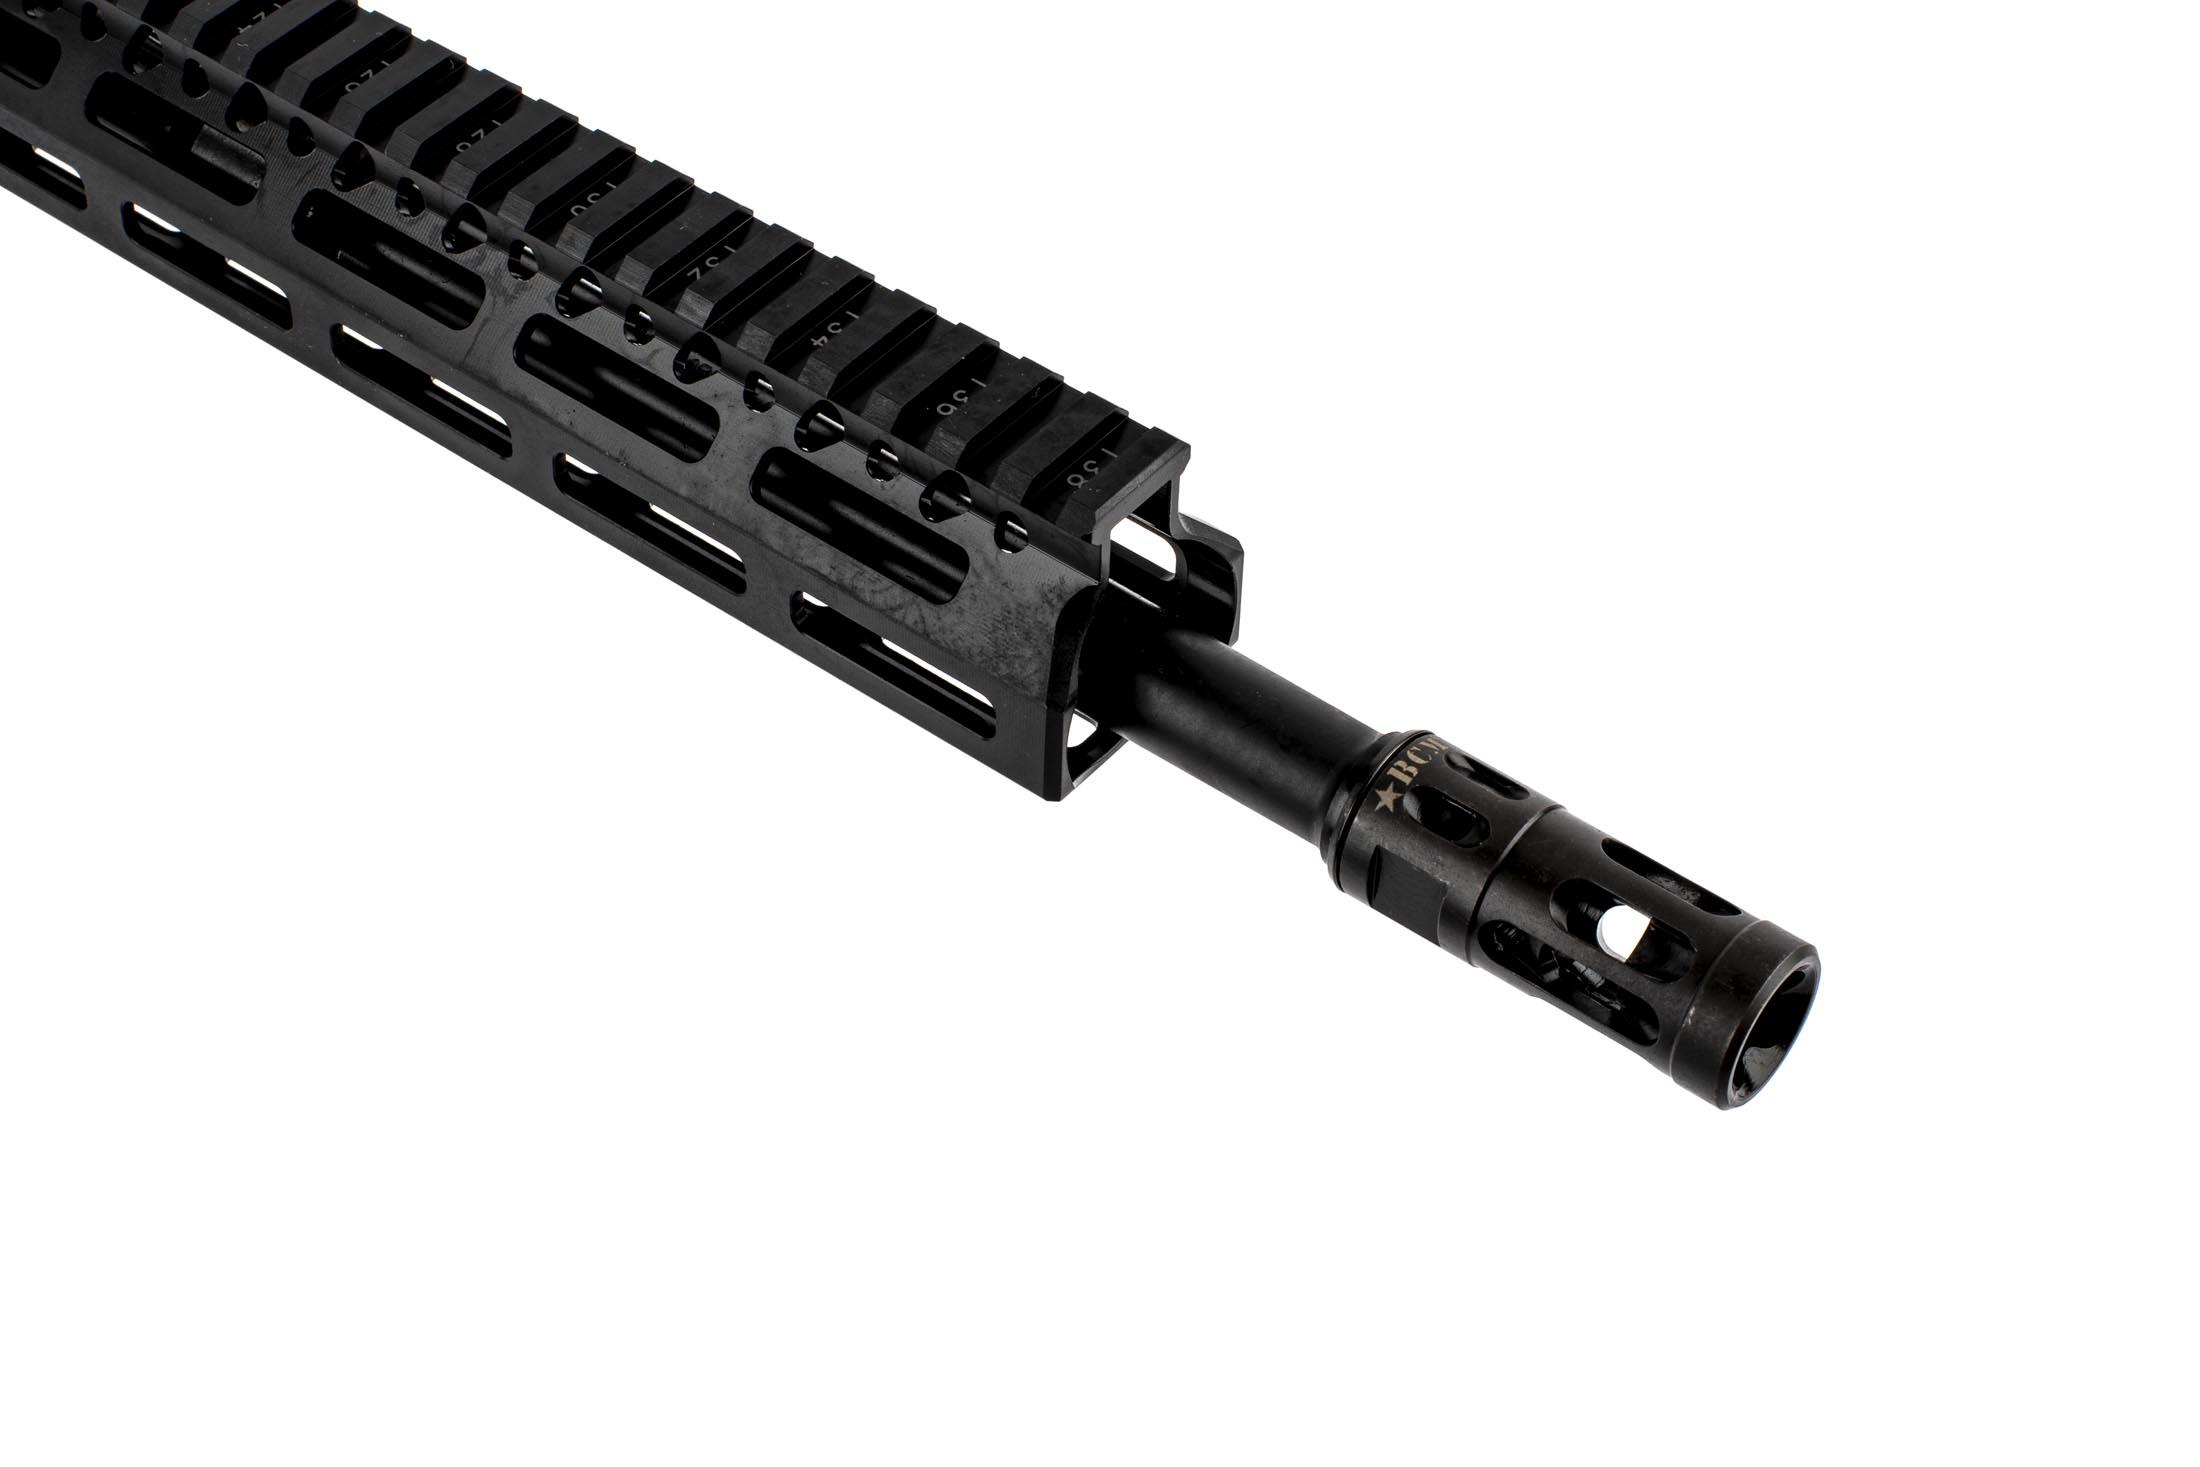 BCM RECCE-12 300 BLK complete rifle with 12.5in barrel is threaded 1/2x28 with a MOD 0 compensator